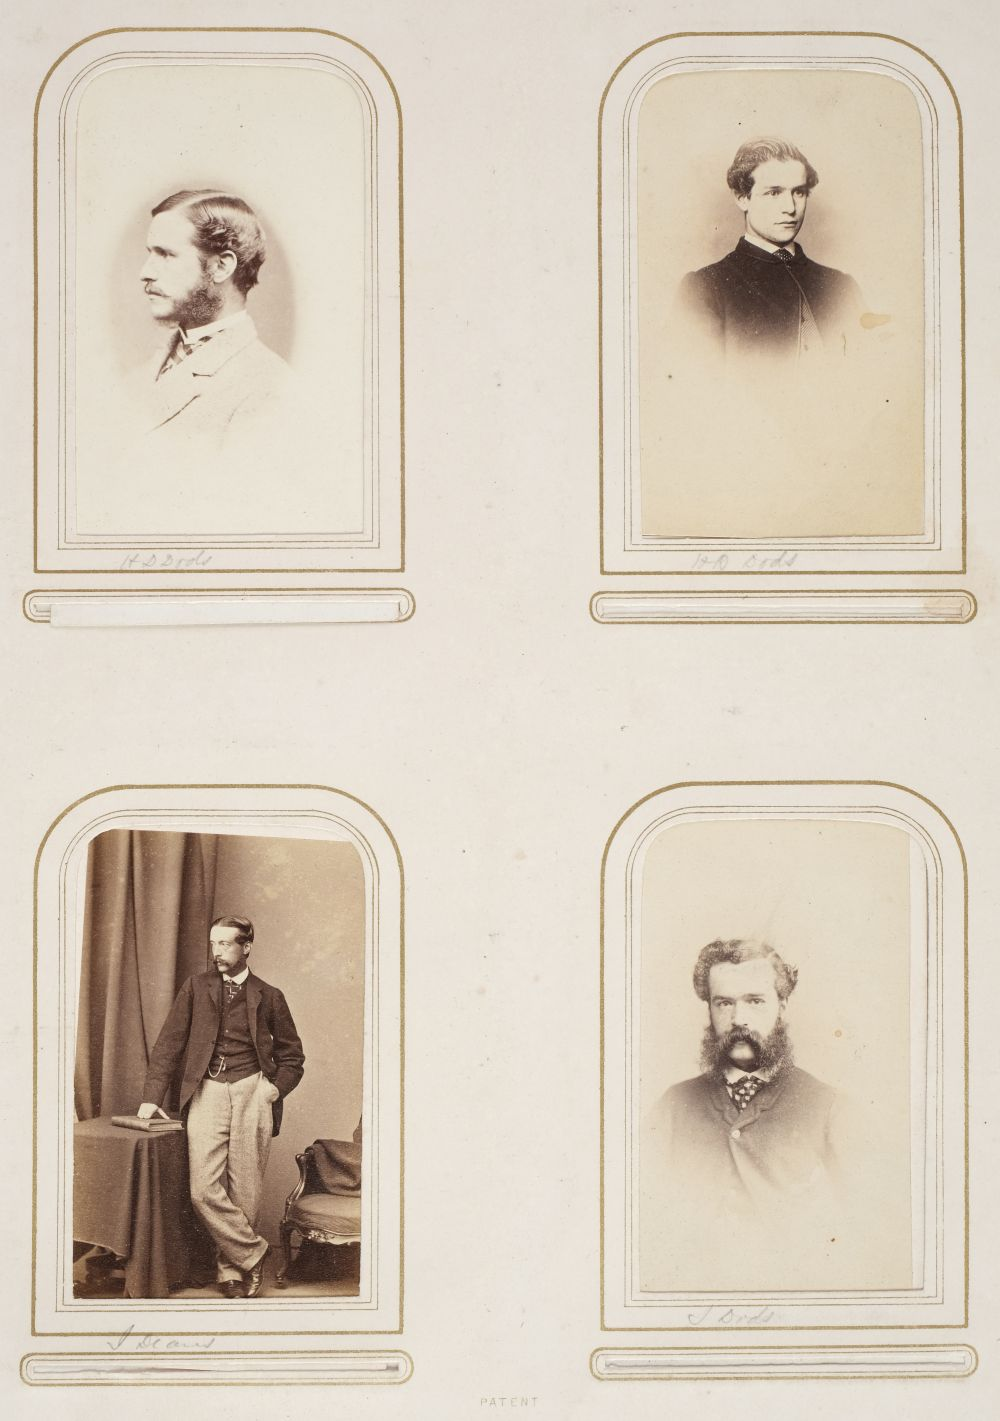 * Cartes de visite. A group of 3 albums of cartes de visite and cabinet cards - Image 6 of 26